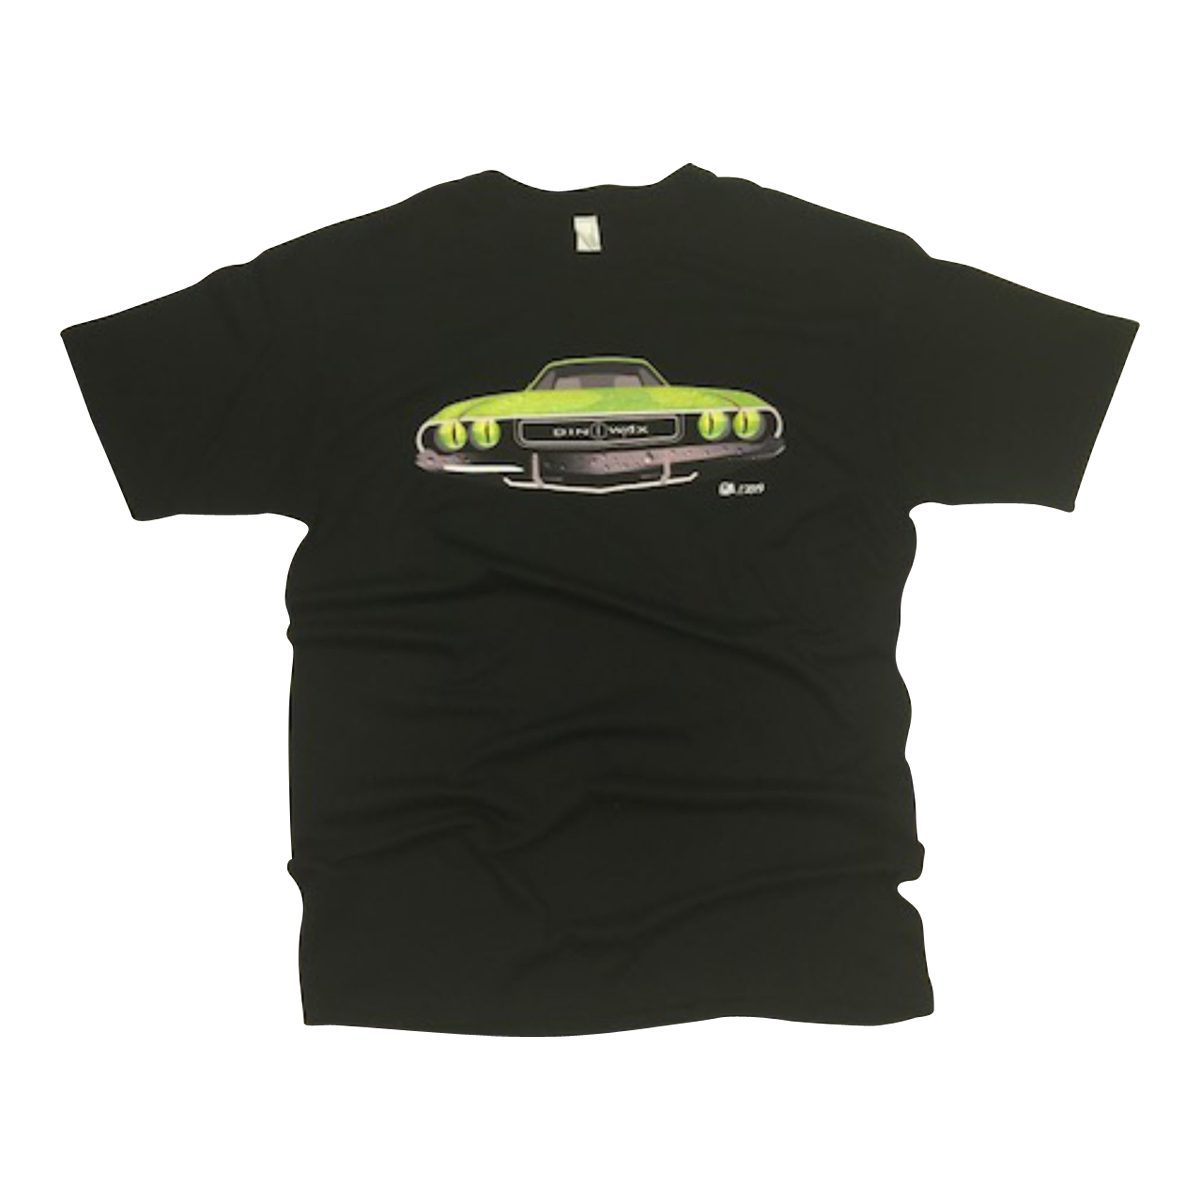 Dinowax Limited Edition, Signature Series Ultra Cotton T-Shirt w/ Custom Logo